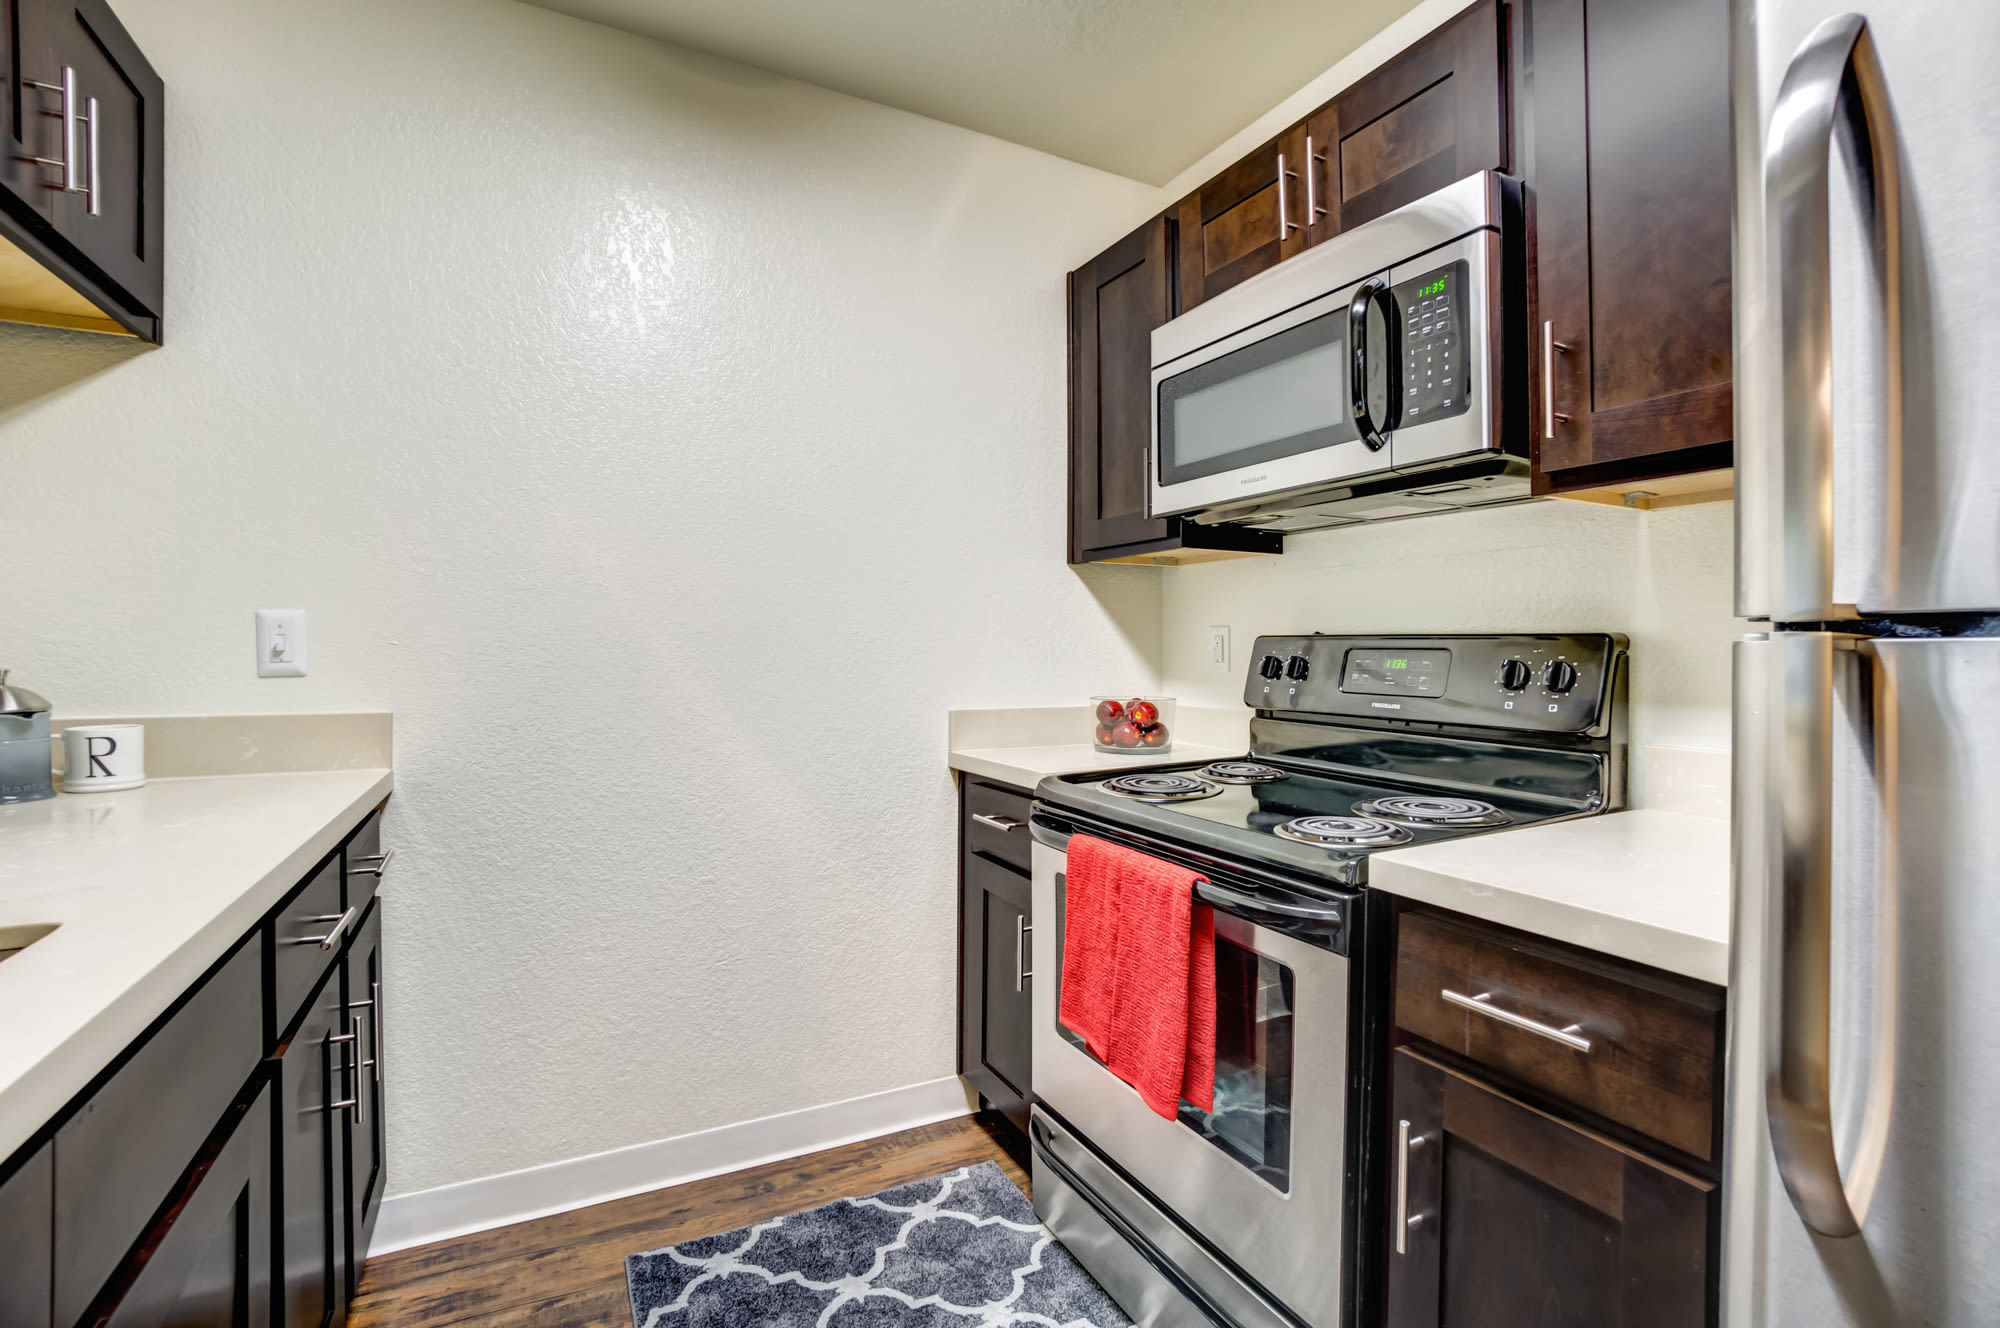 Kitchen and Living Room at Serramonte Ridge Apartment Homes in Daly City